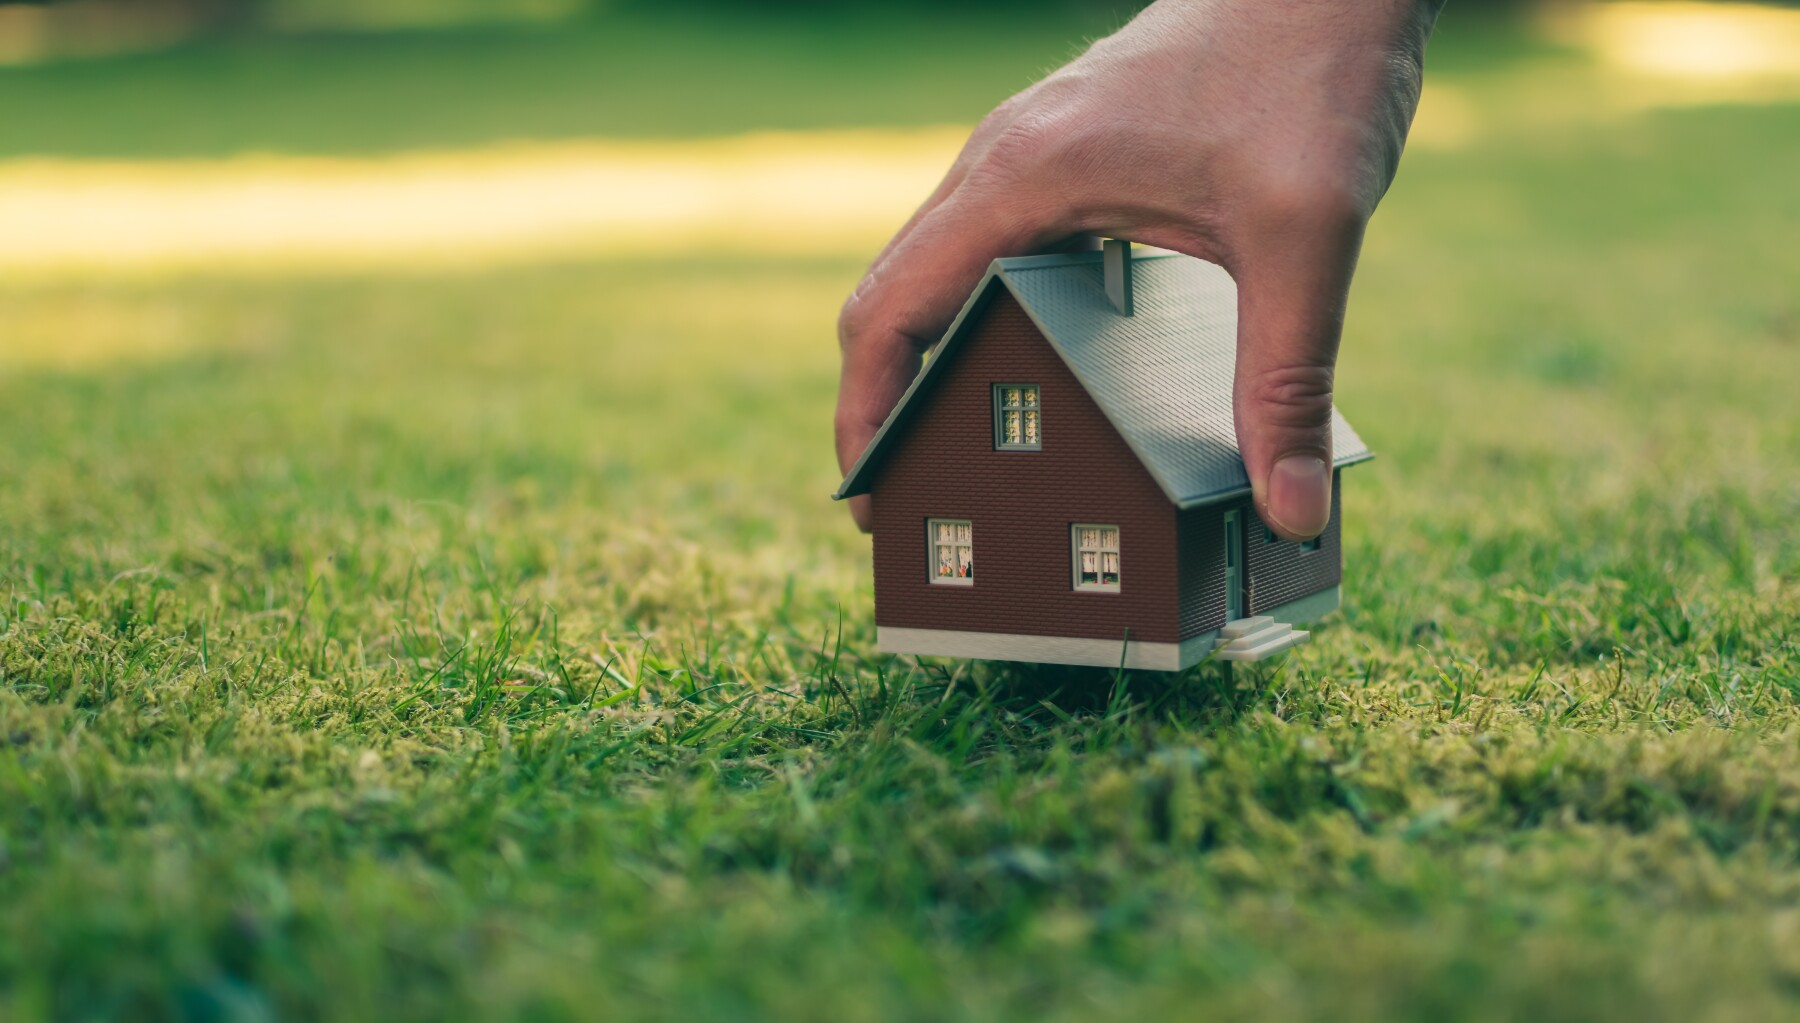 Concept of selling a house. A hand is holding a model house above green meadow.